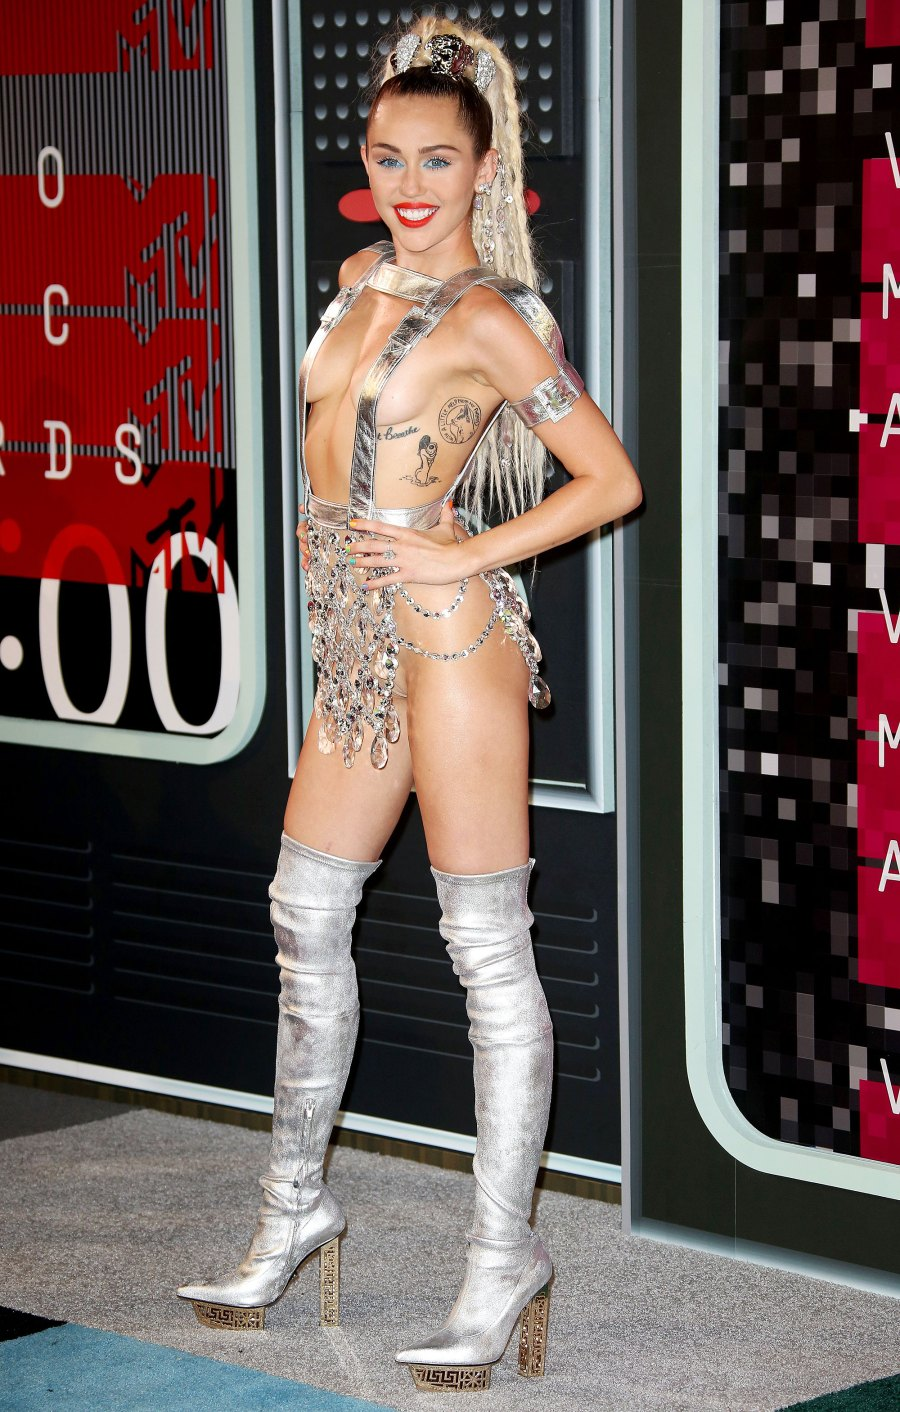 Most Stylish Moments of the Decade - Miley Cyrus at the 2015 VMAs